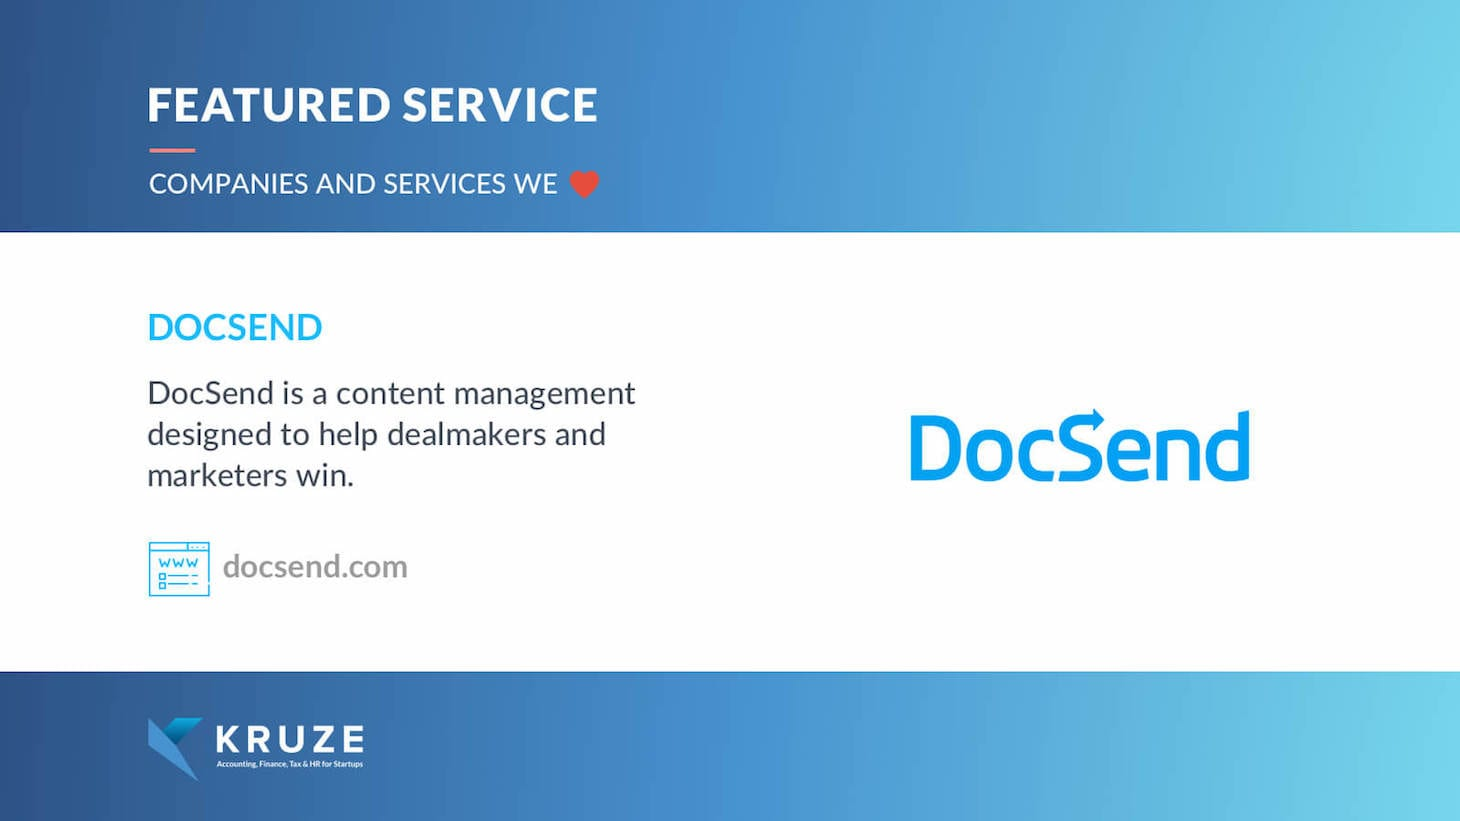 Featured Service - DocSend